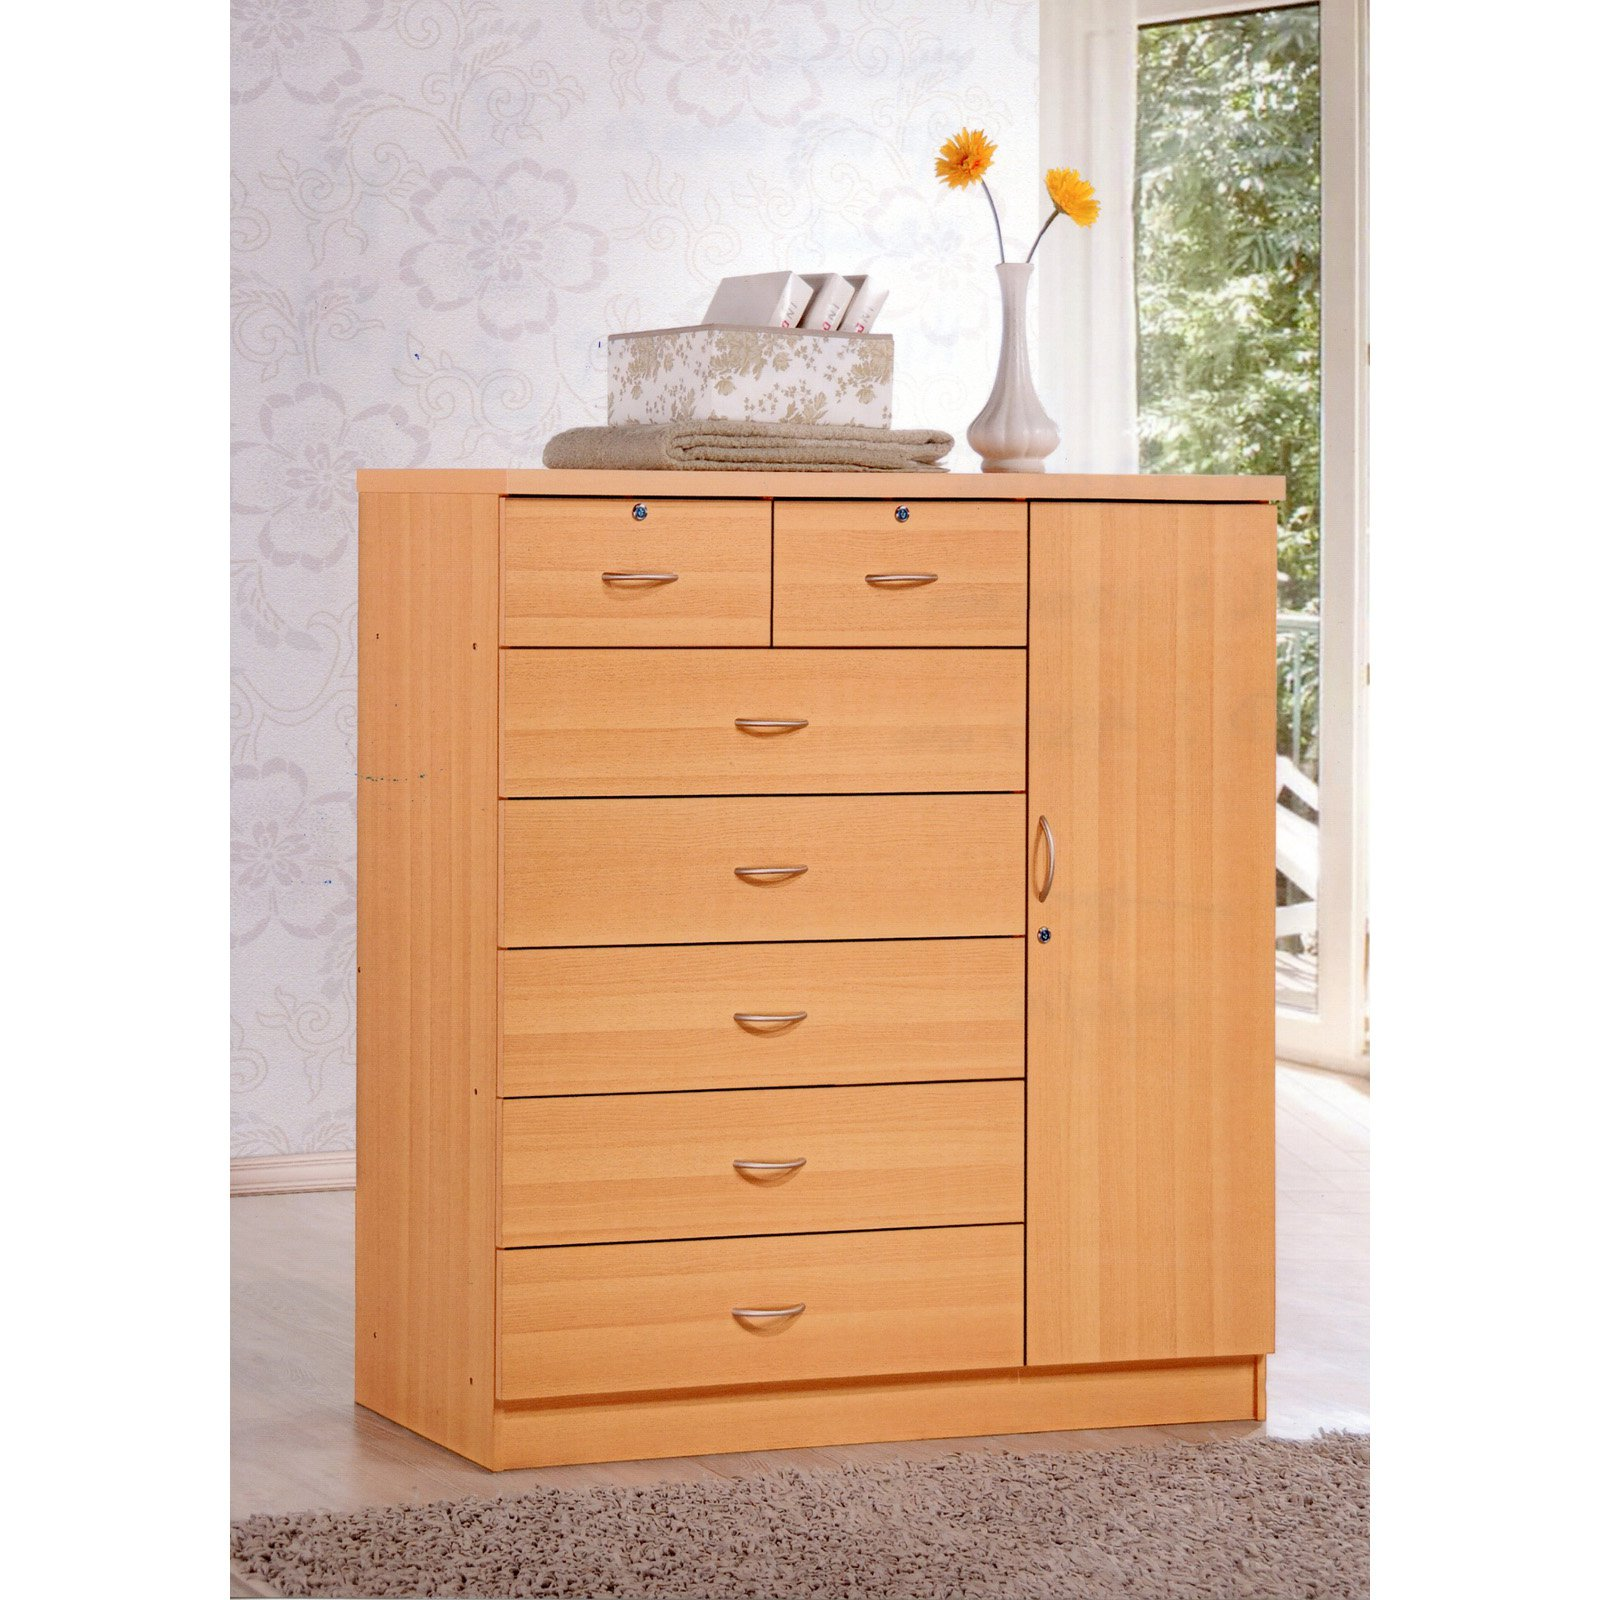 Hodedah Imports 7 Drawer 1 Door Chest